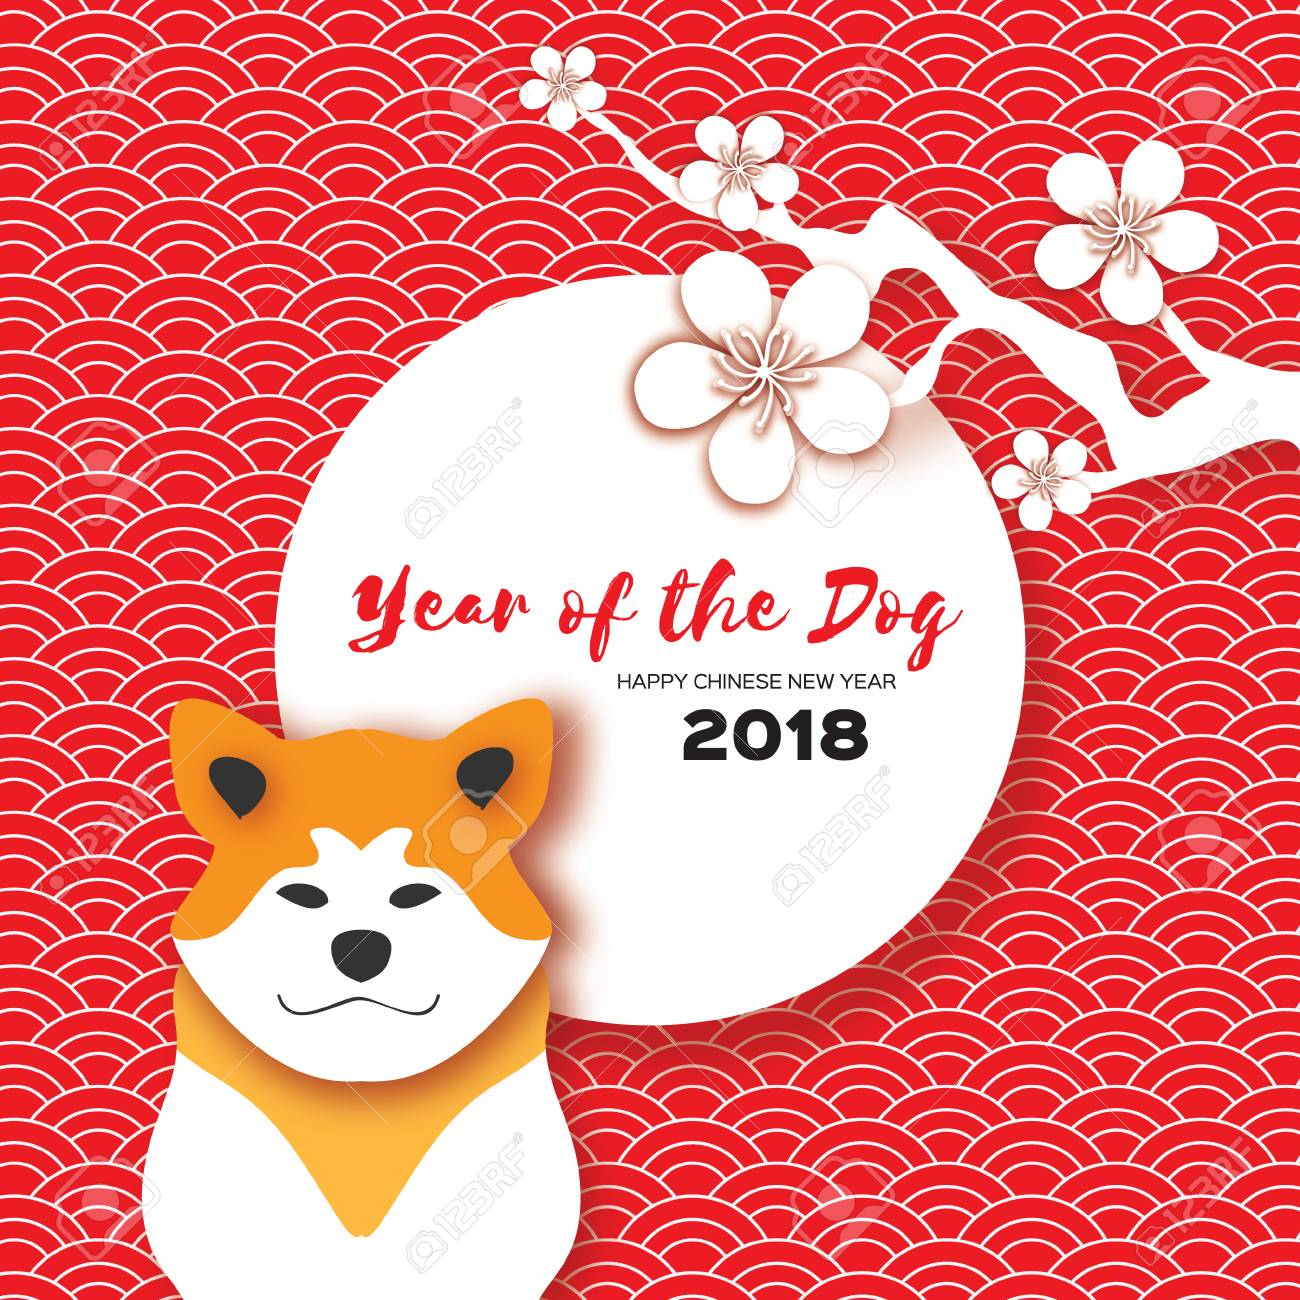 2018 Happy Chinese New Year Greeting Card Chinese Year Of The